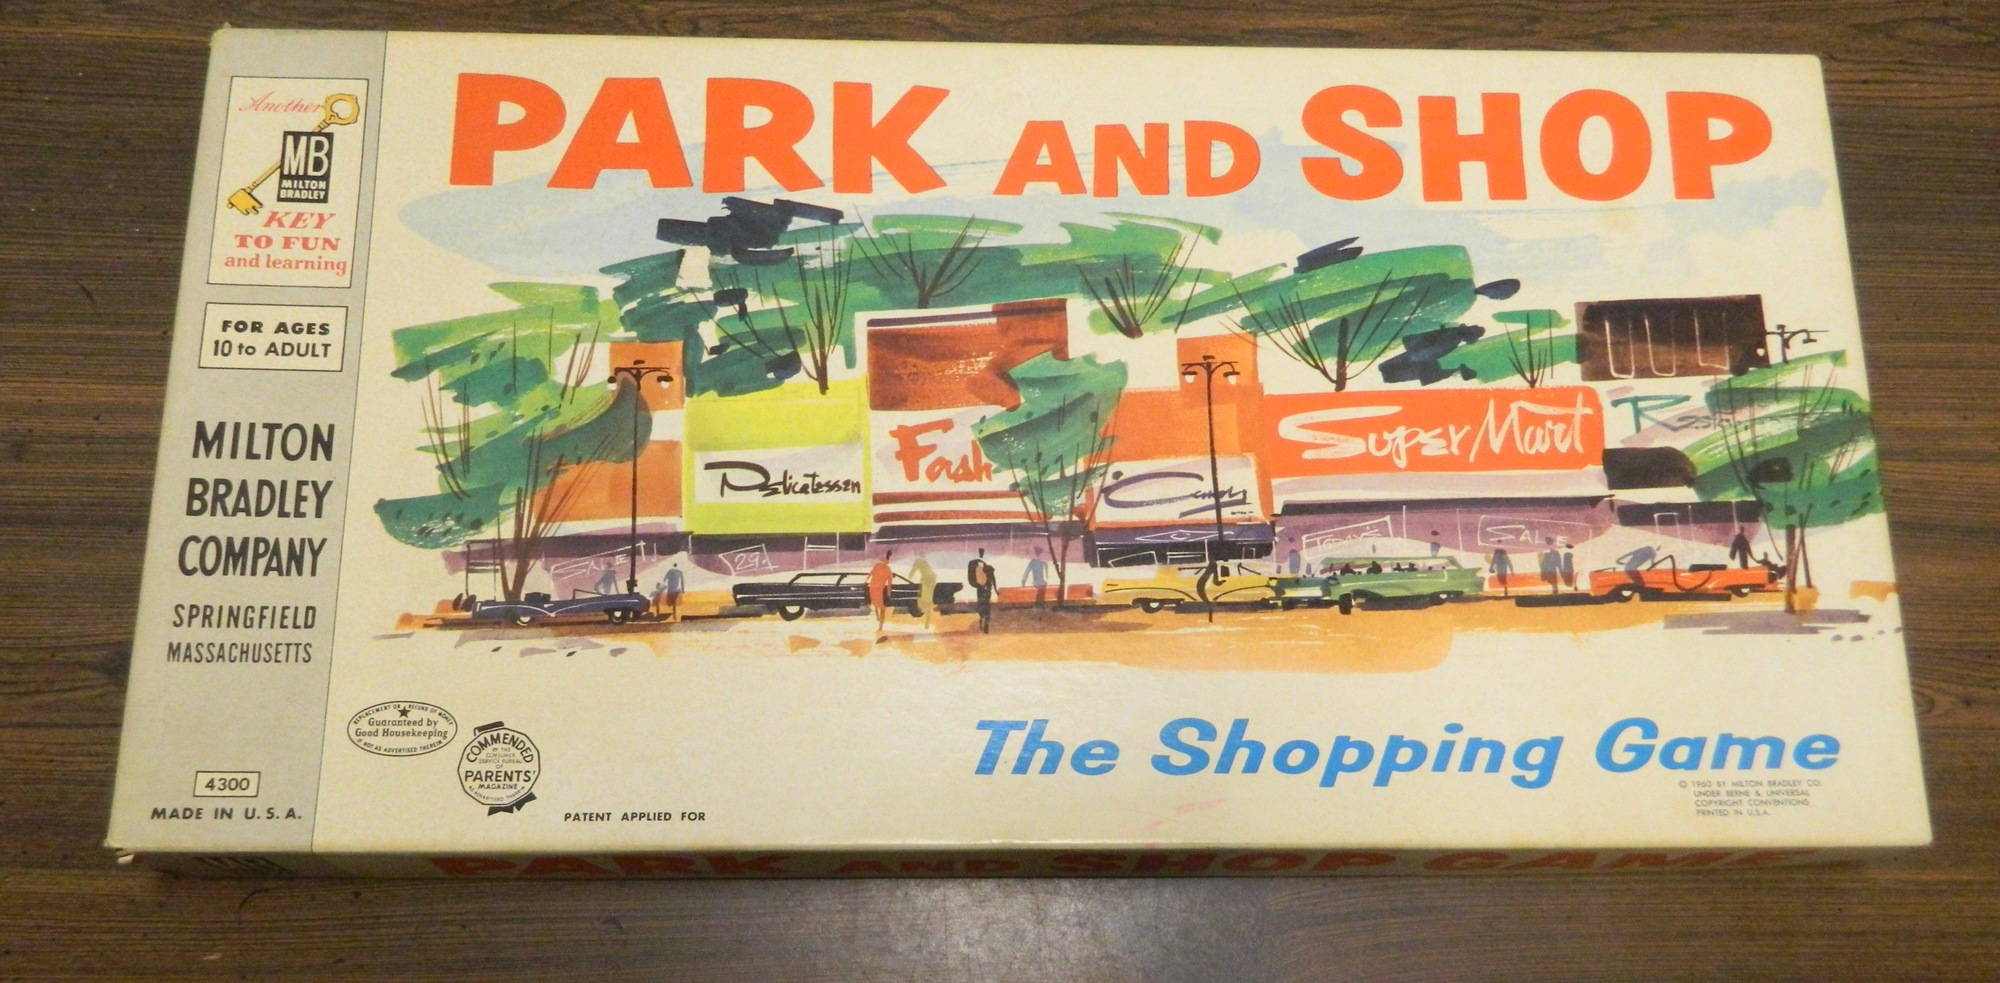 Box for Park and Shop